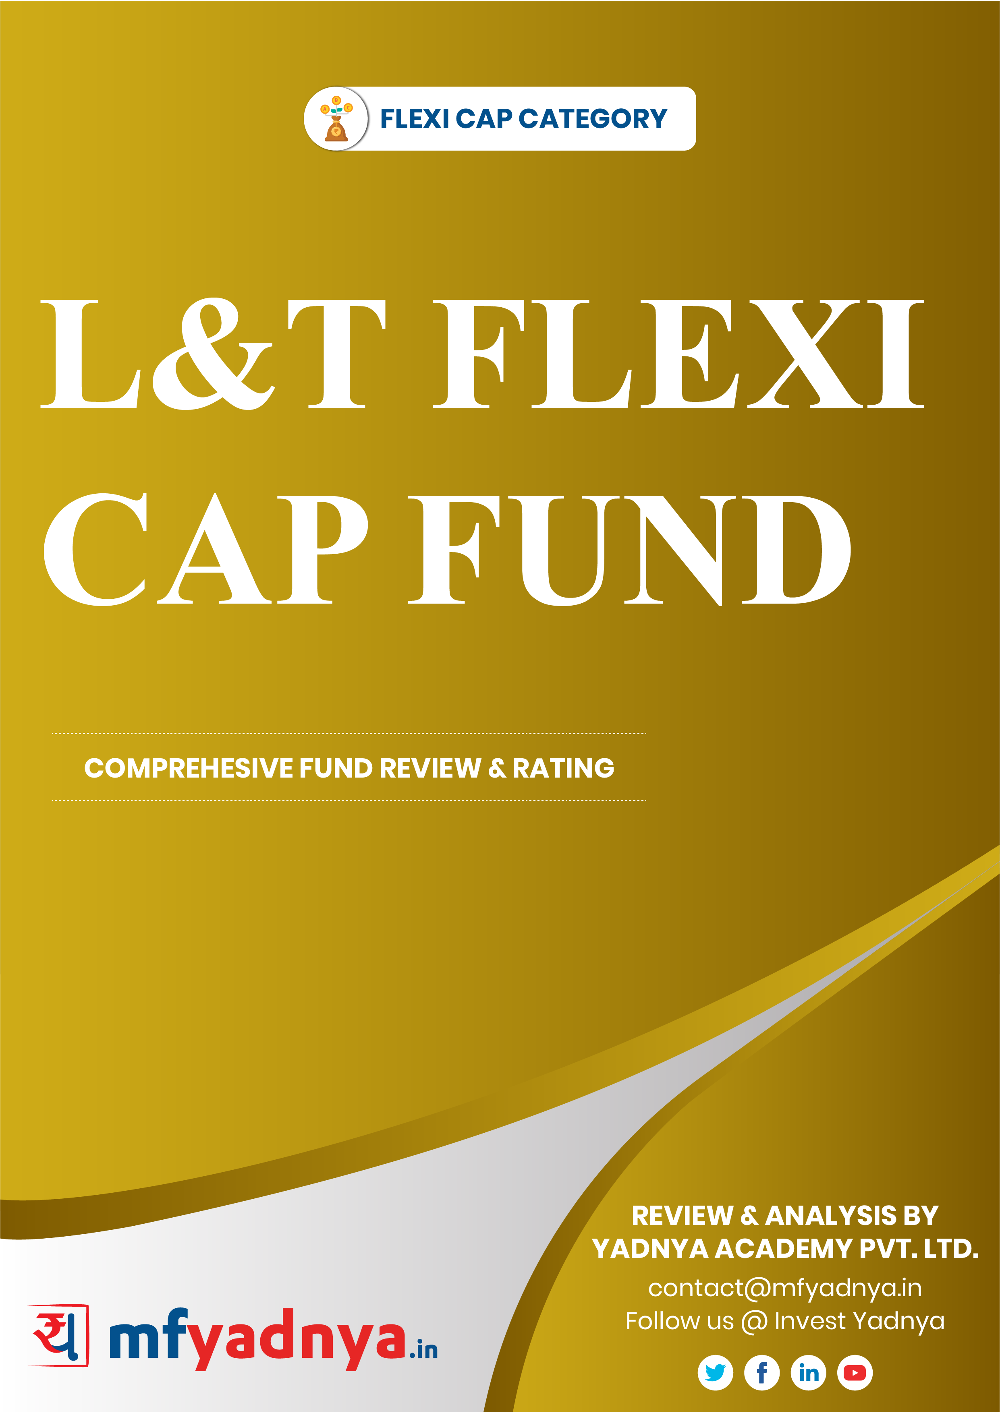 This e-book offers a comprehensive mutual fund review of L&T Equity Fund for multicap category. It reviews the fund's return, ratio, allocation etc. ✔ Detailed Mutual Fund Analysis ✔ Latest Research Reports